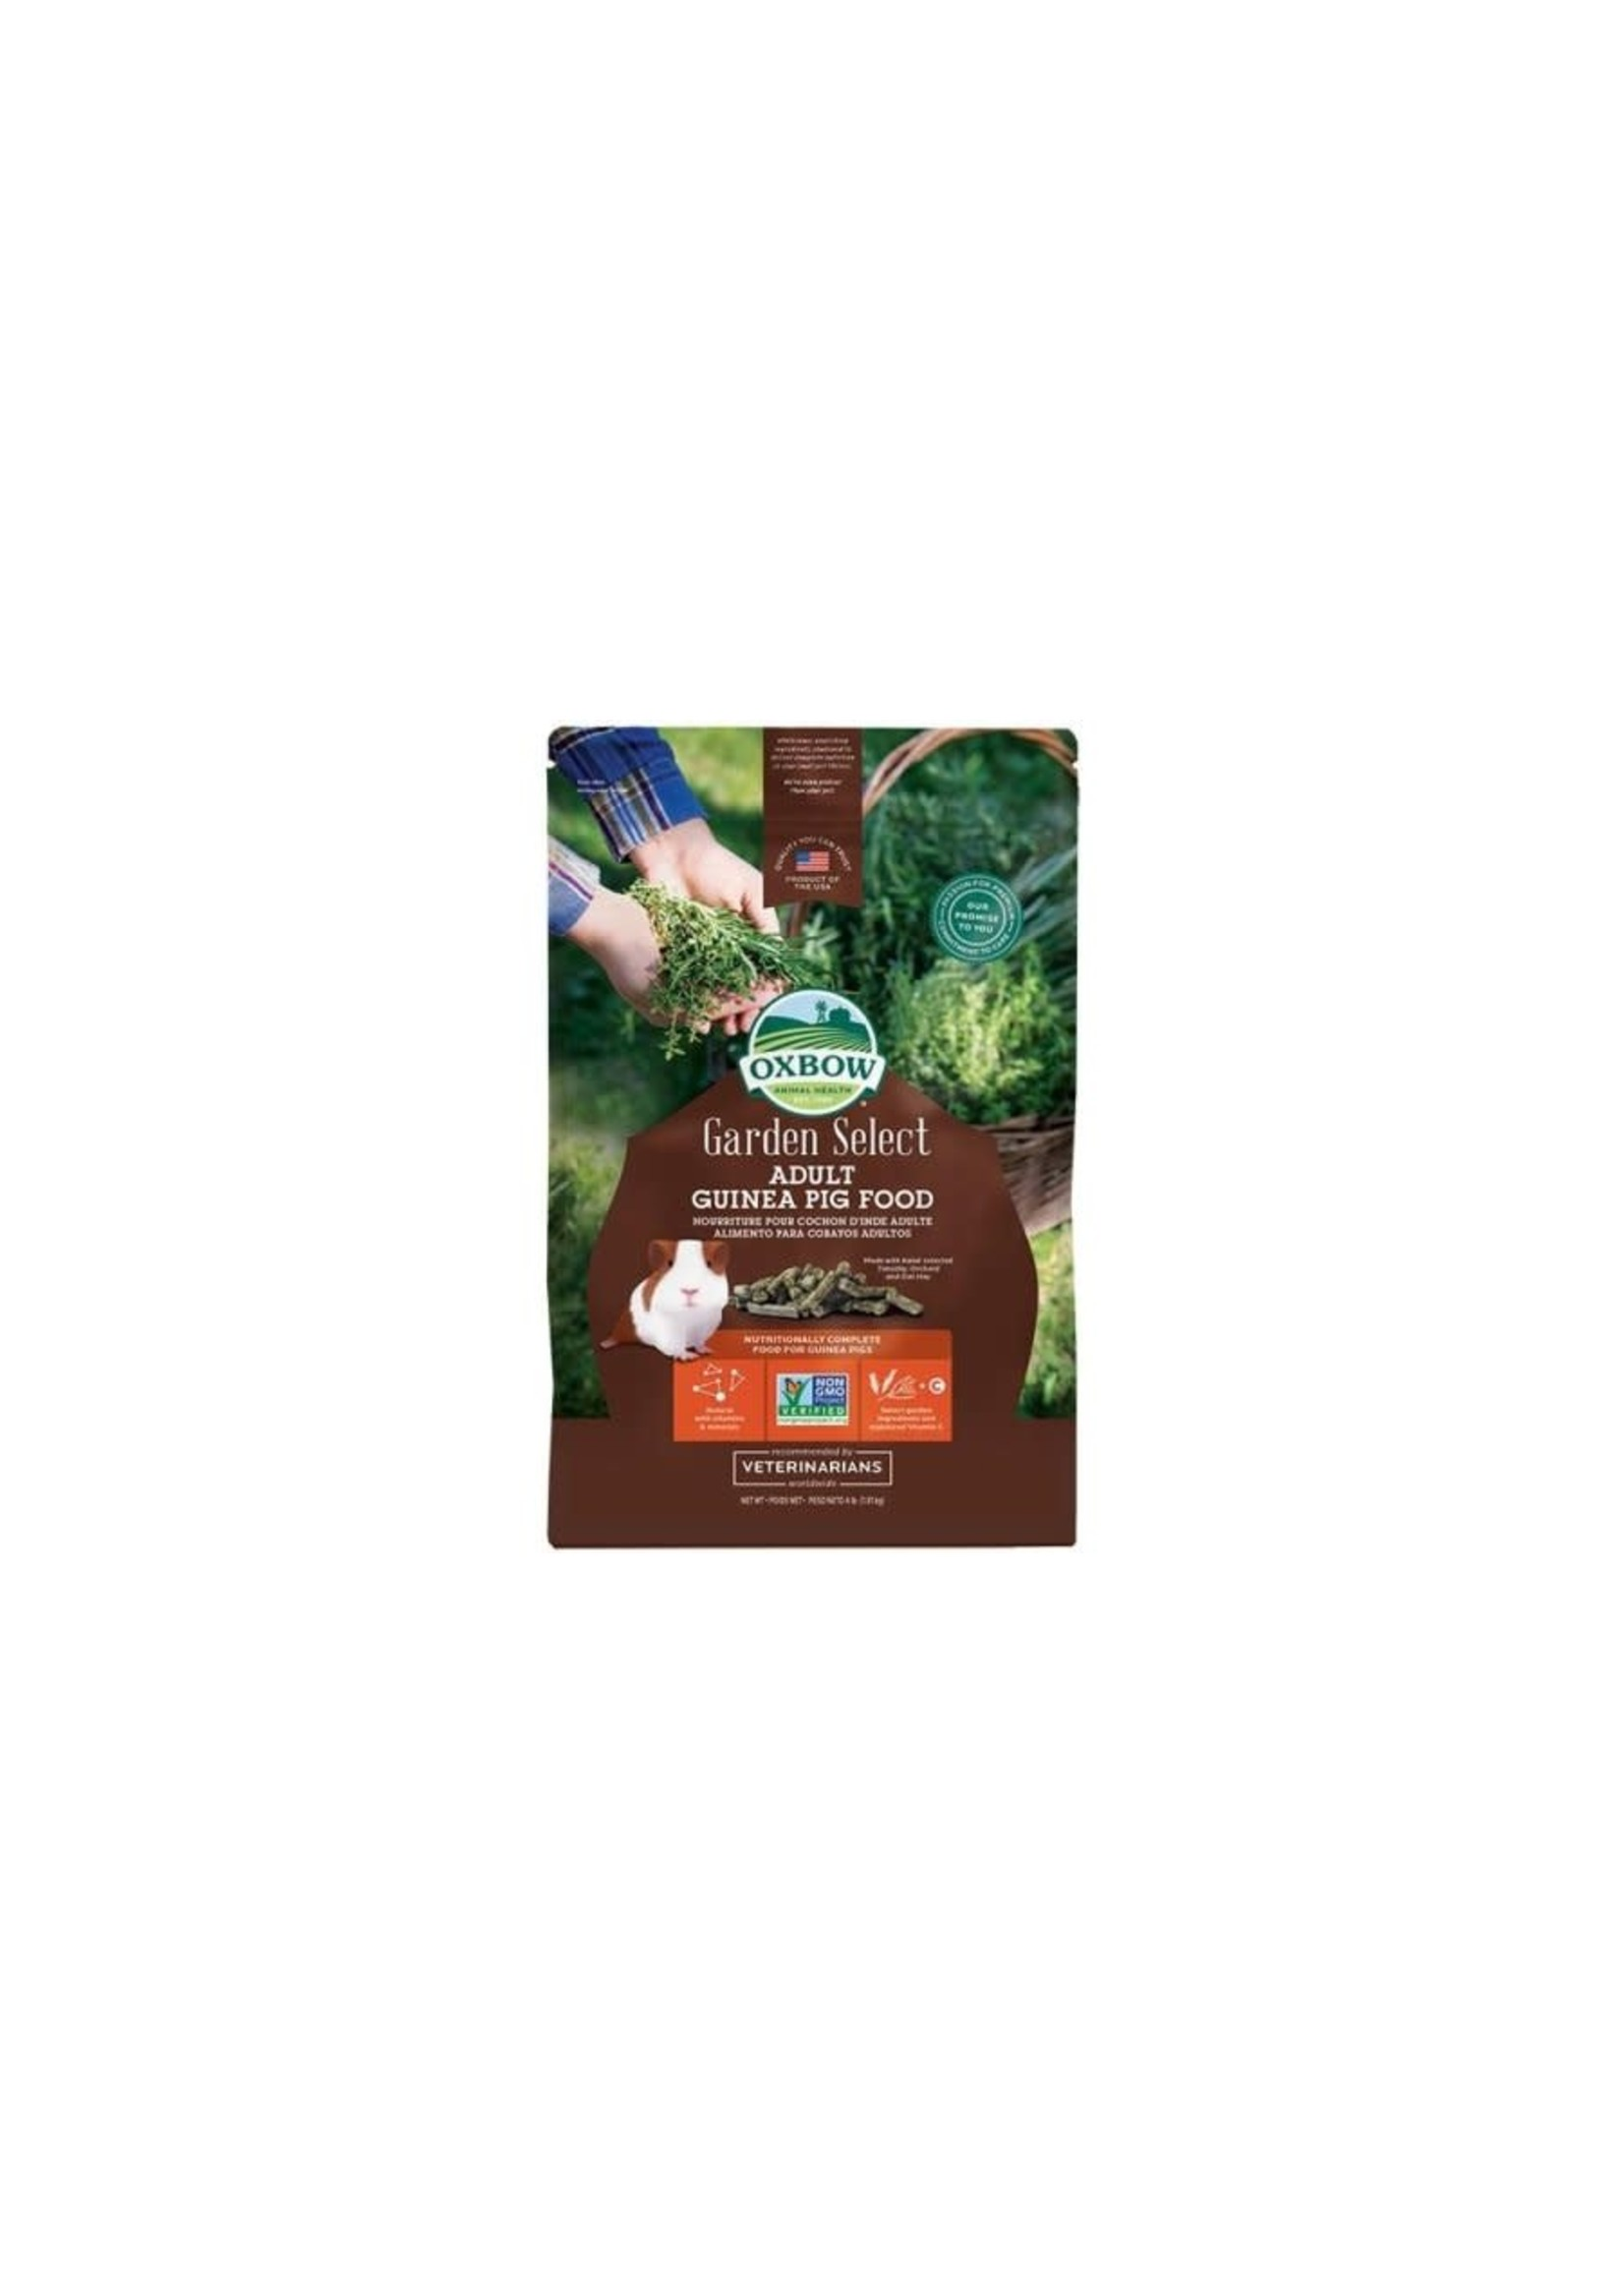 Oxbow Oxbow rongeur garden select cochon d'Inde adulte 4 lbs